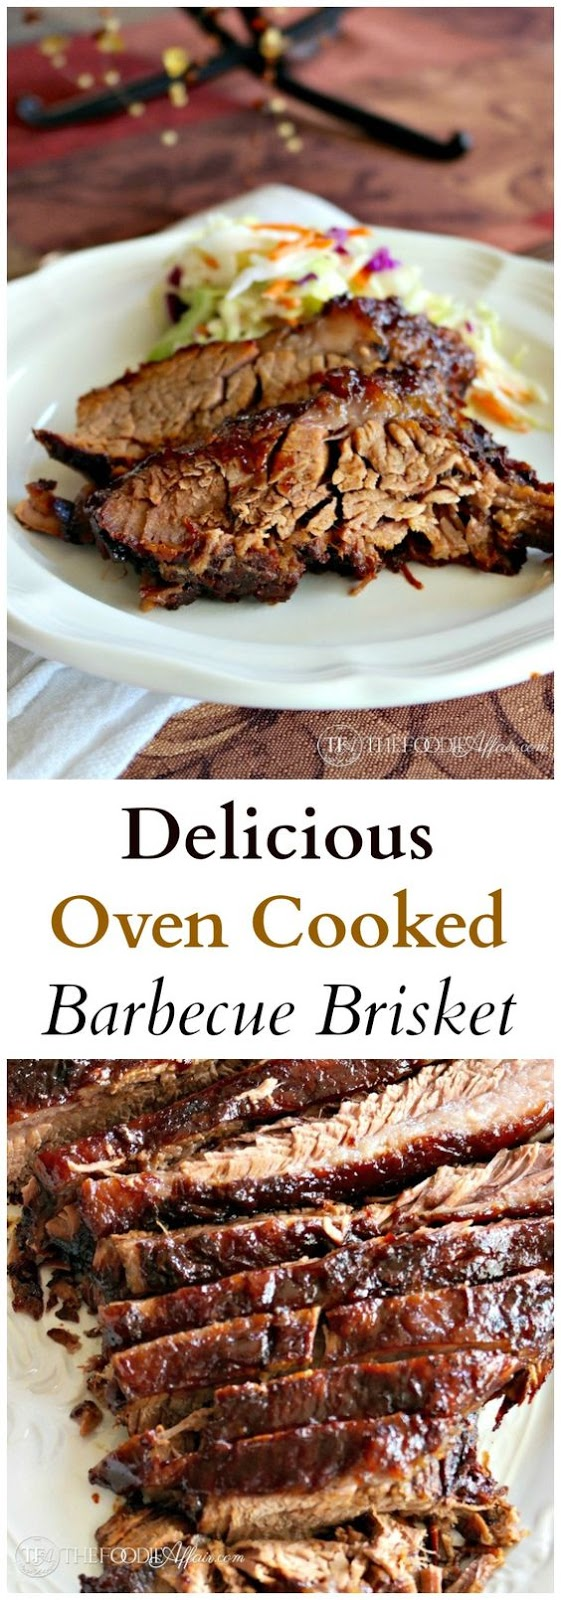 Full-flavored delicious Oven Cooked Barbecue Brisket marinated overnight, and then cooked on low heat yielding a smokey tender flavor!